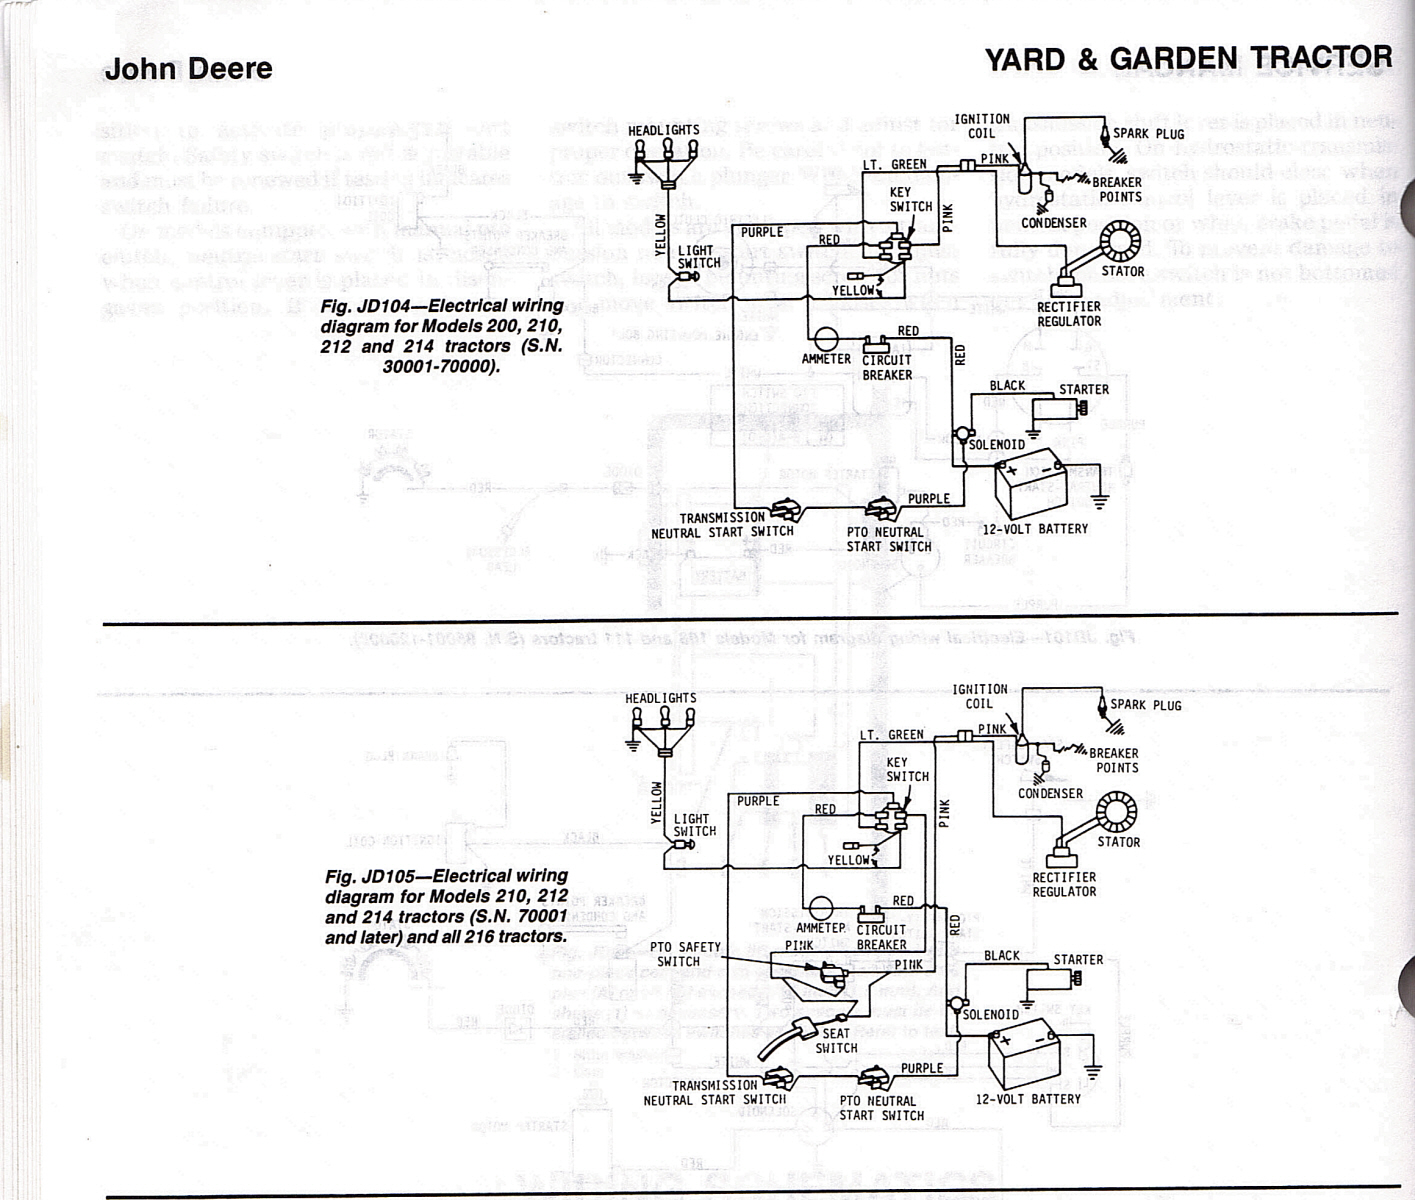 How Can I See A Wiring Diagram For A Deere Model 212